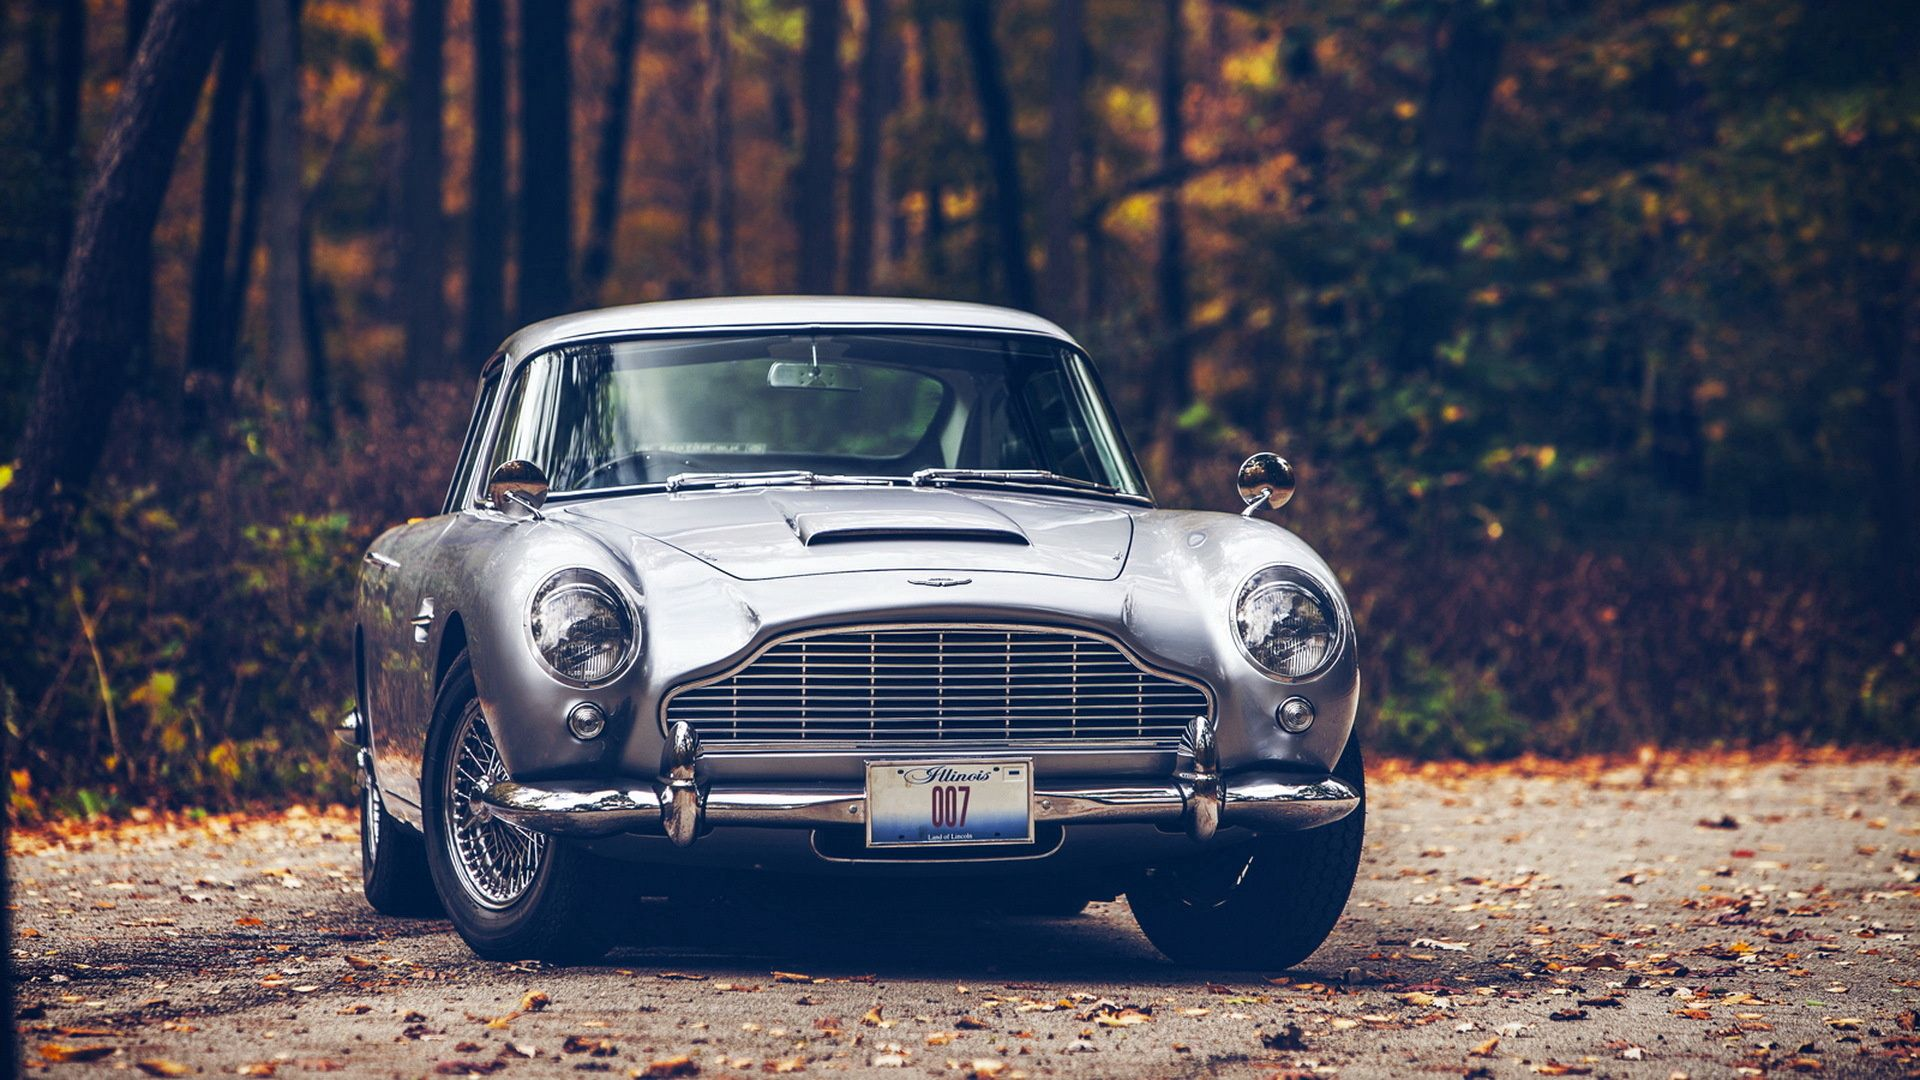 82933 download wallpaper Aston Martin, Cars, Car, Db5 screensavers and pictures for free